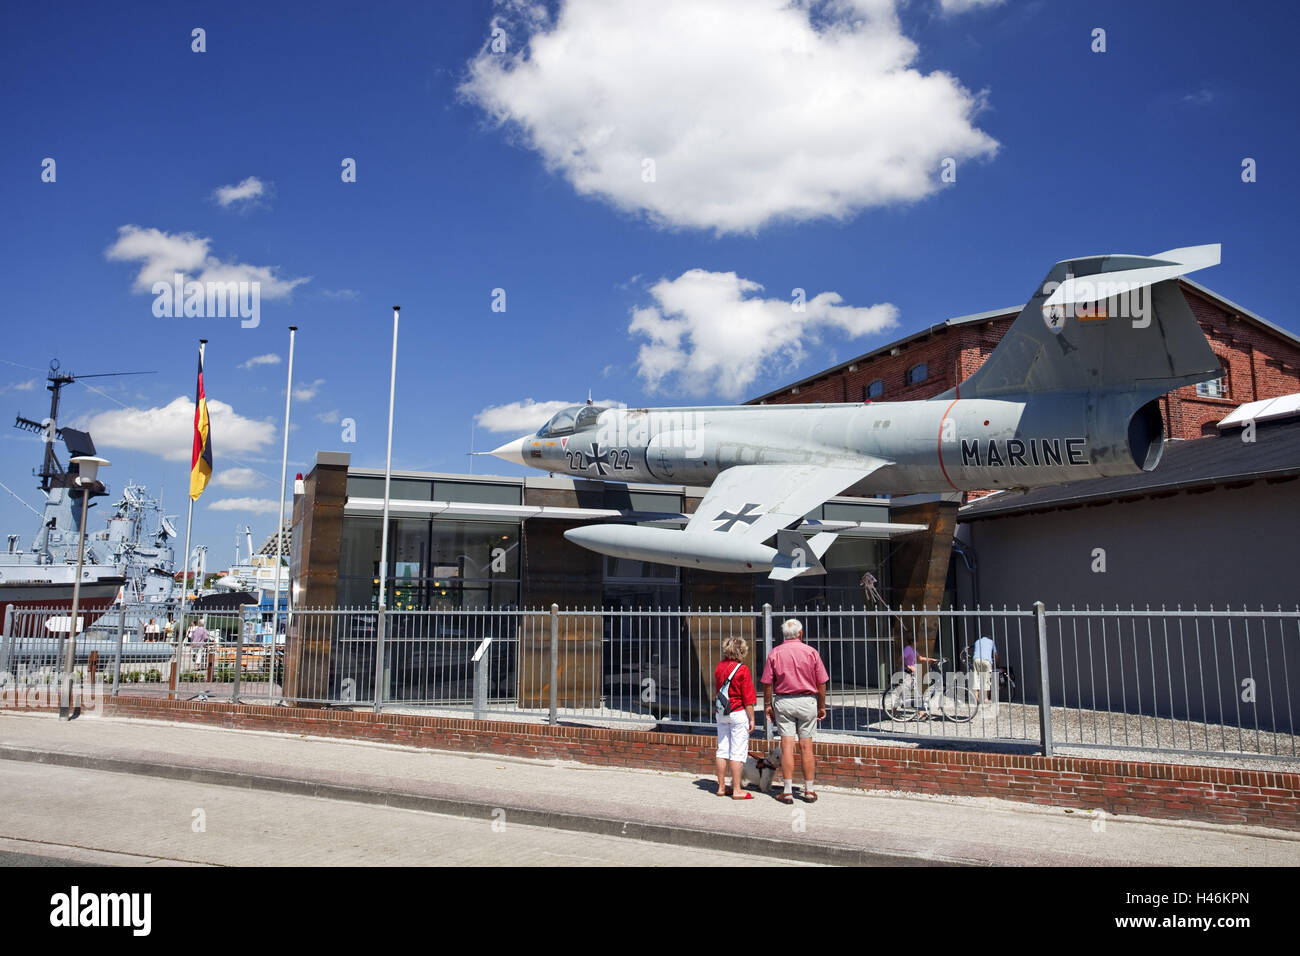 Germany, Wilhelmshaven, marine hunt powerful striker F-104G, German naval museum on the south beach Wilhelmshaven, Stock Photo